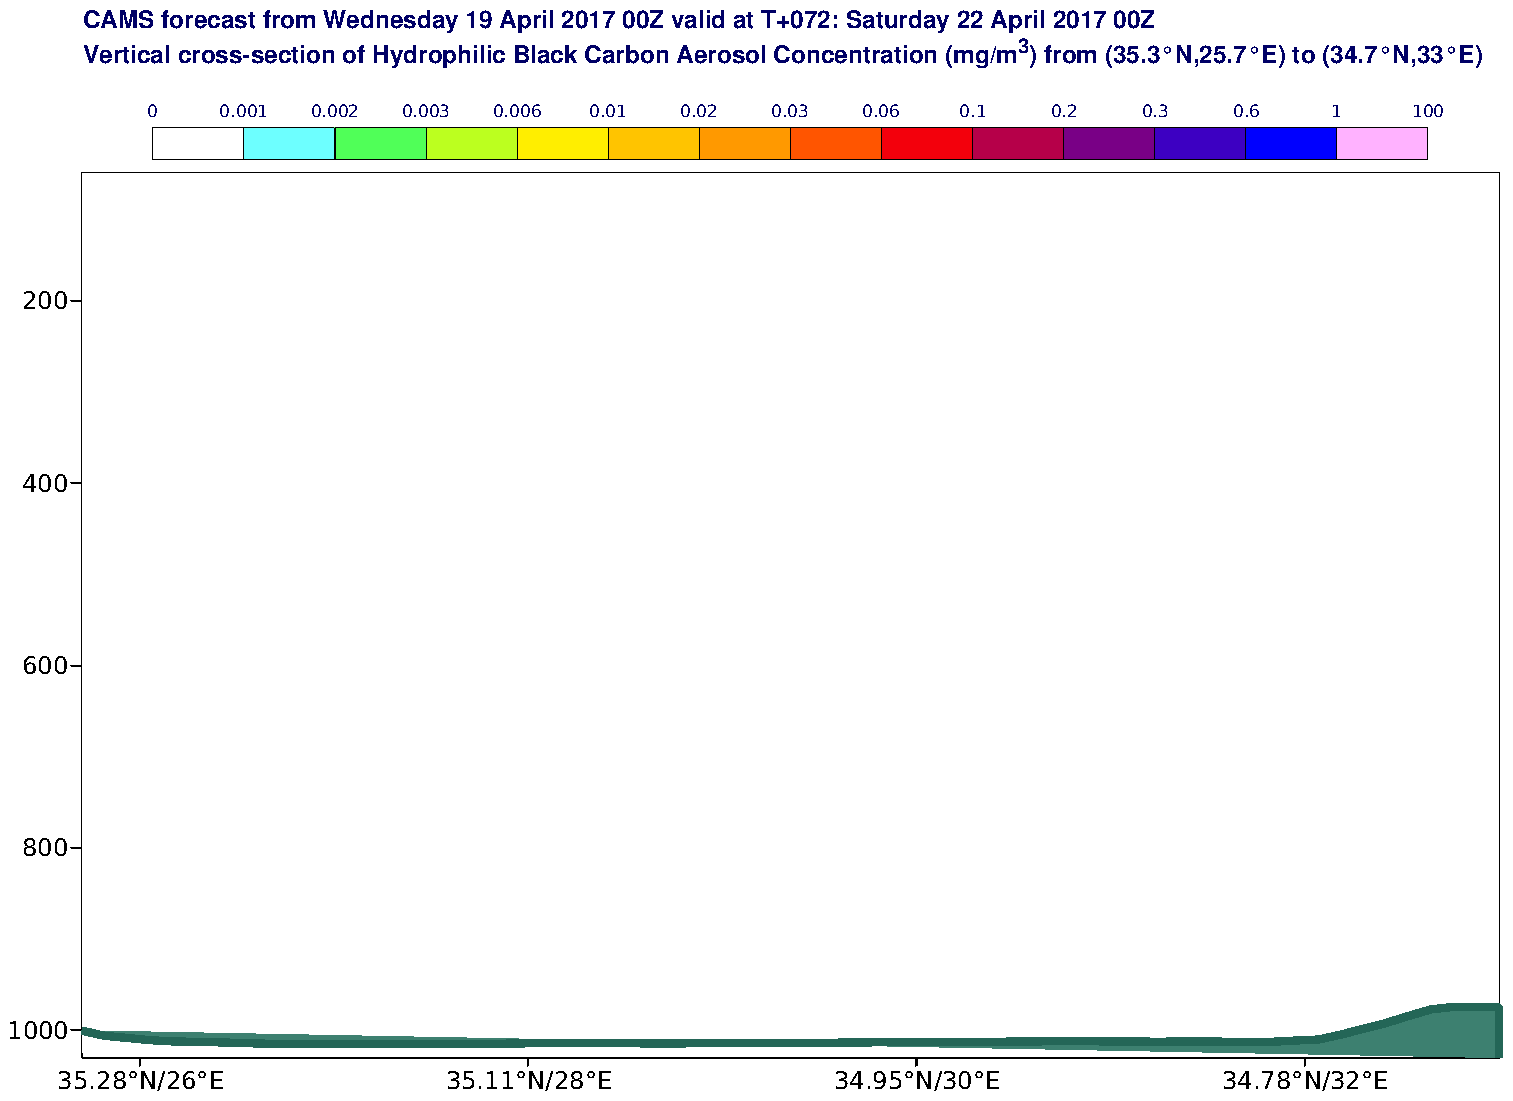 Vertical cross-section of Hydrophilic Black Carbon Aerosol Concentration (mg/m3) valid at T72 - 2017-04-22 00:00